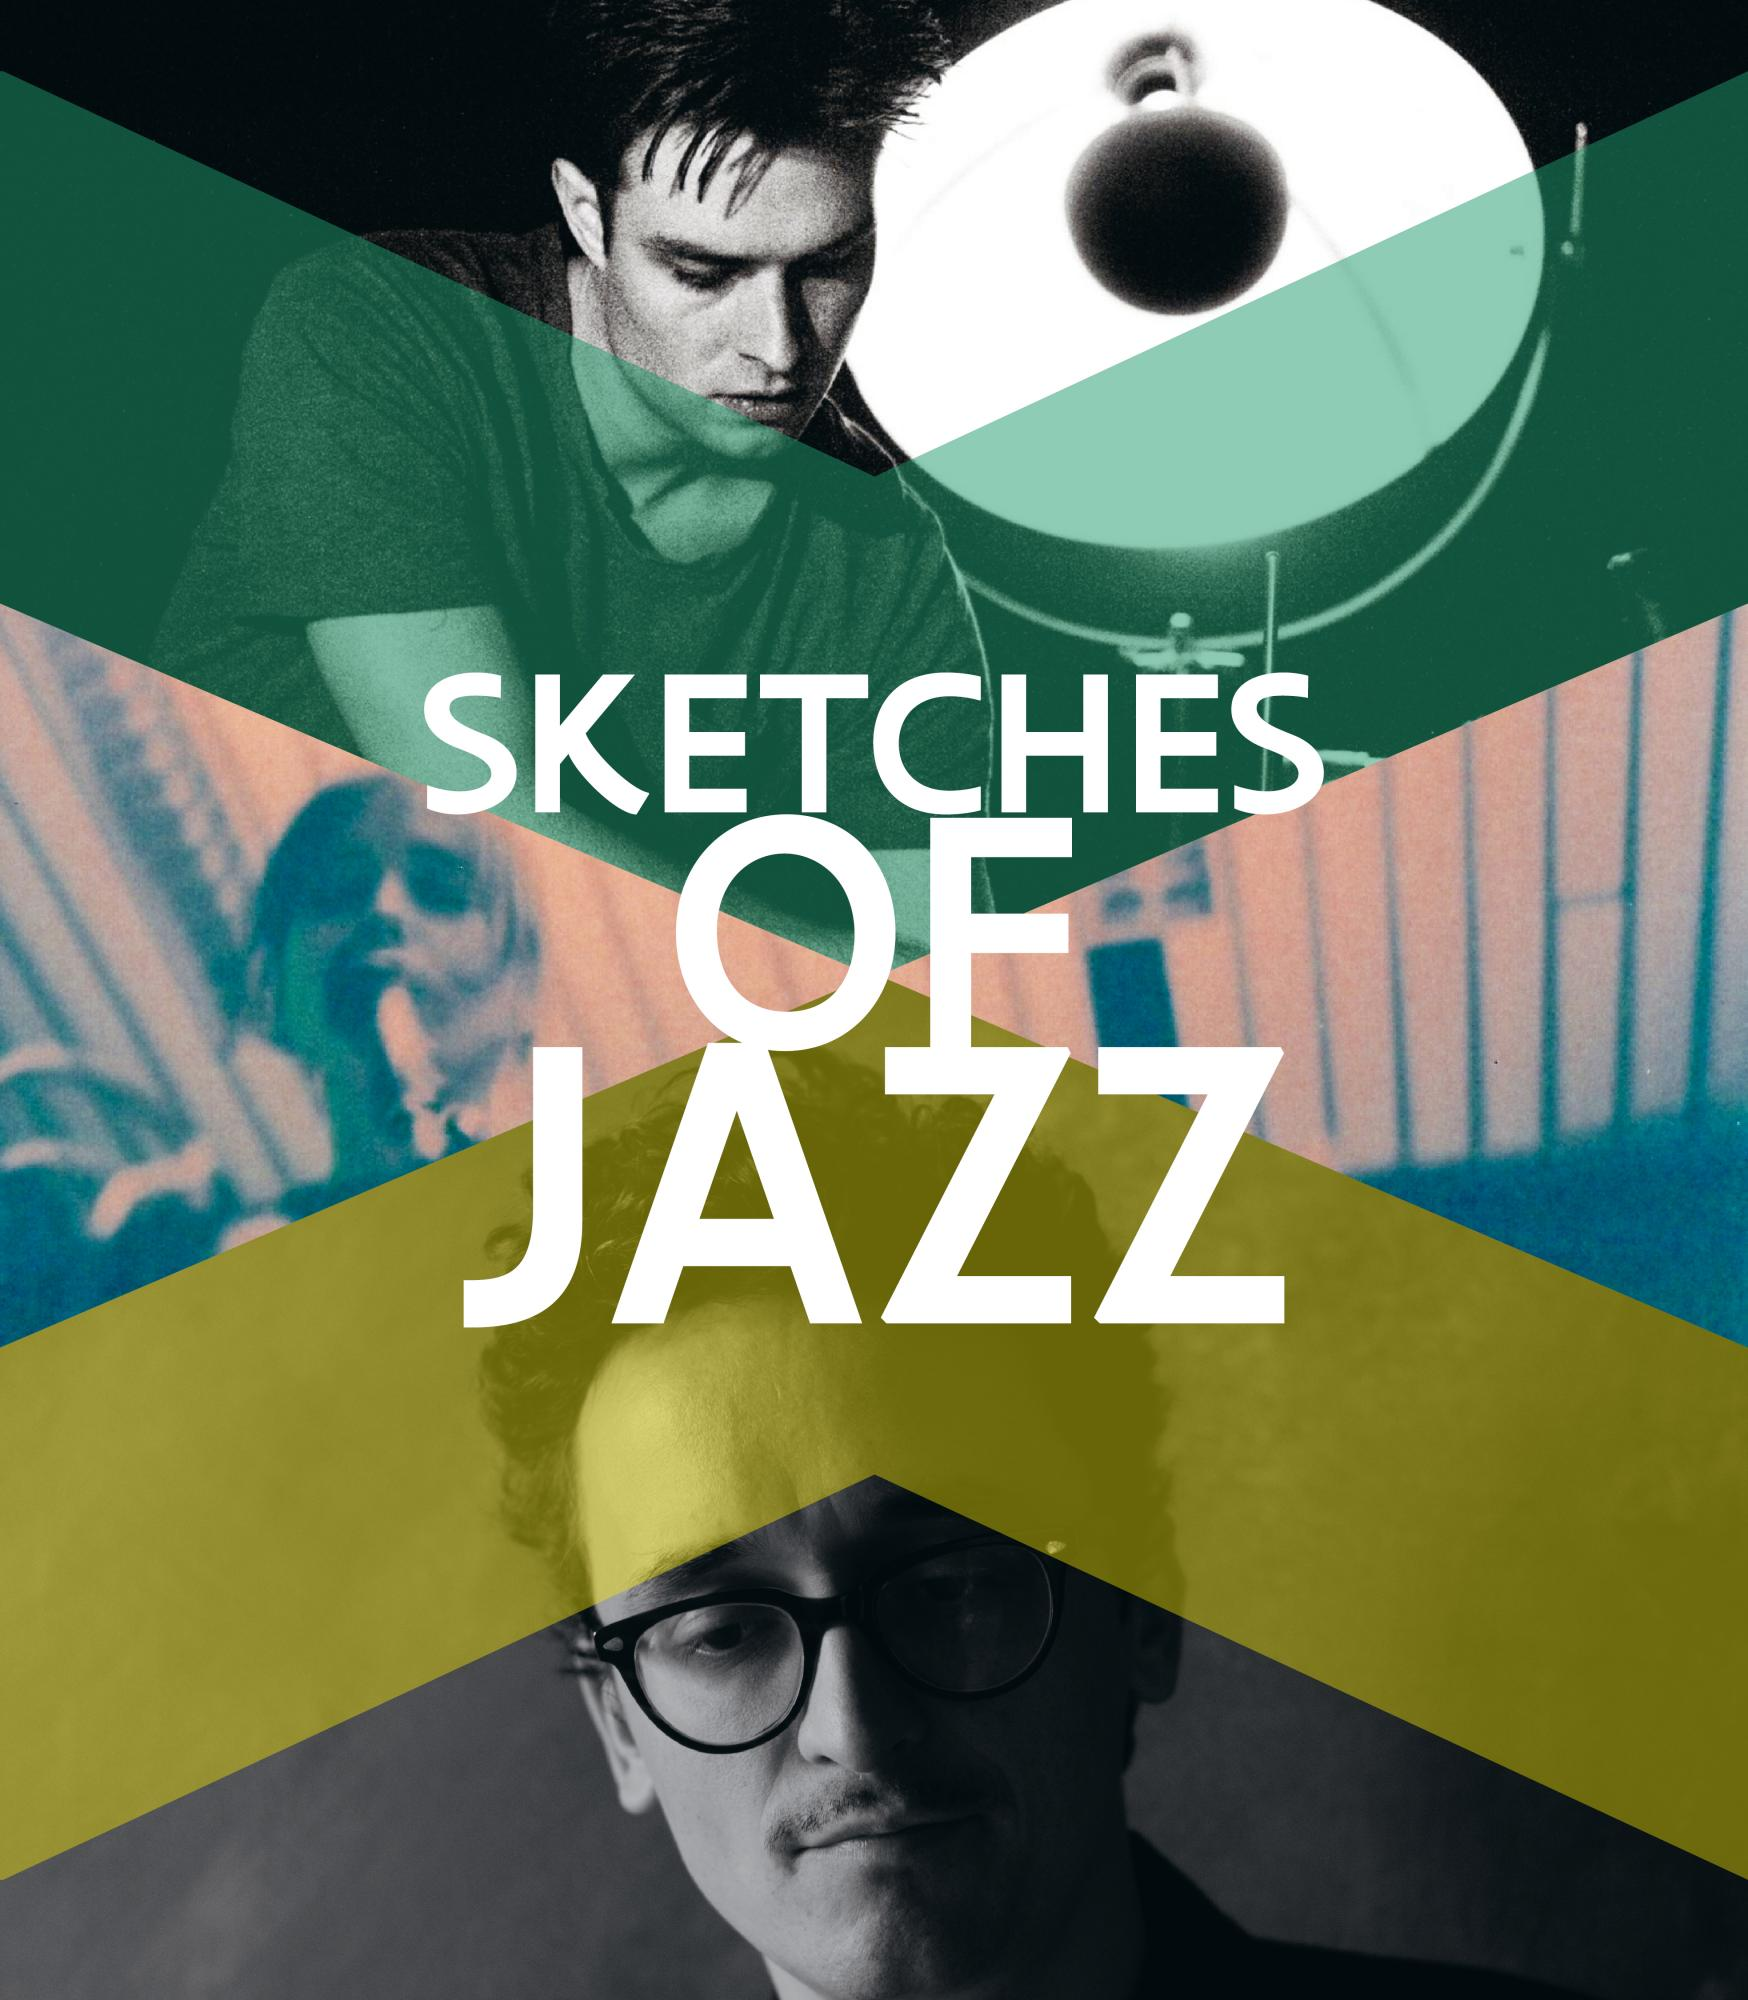 Sketches of Jazz